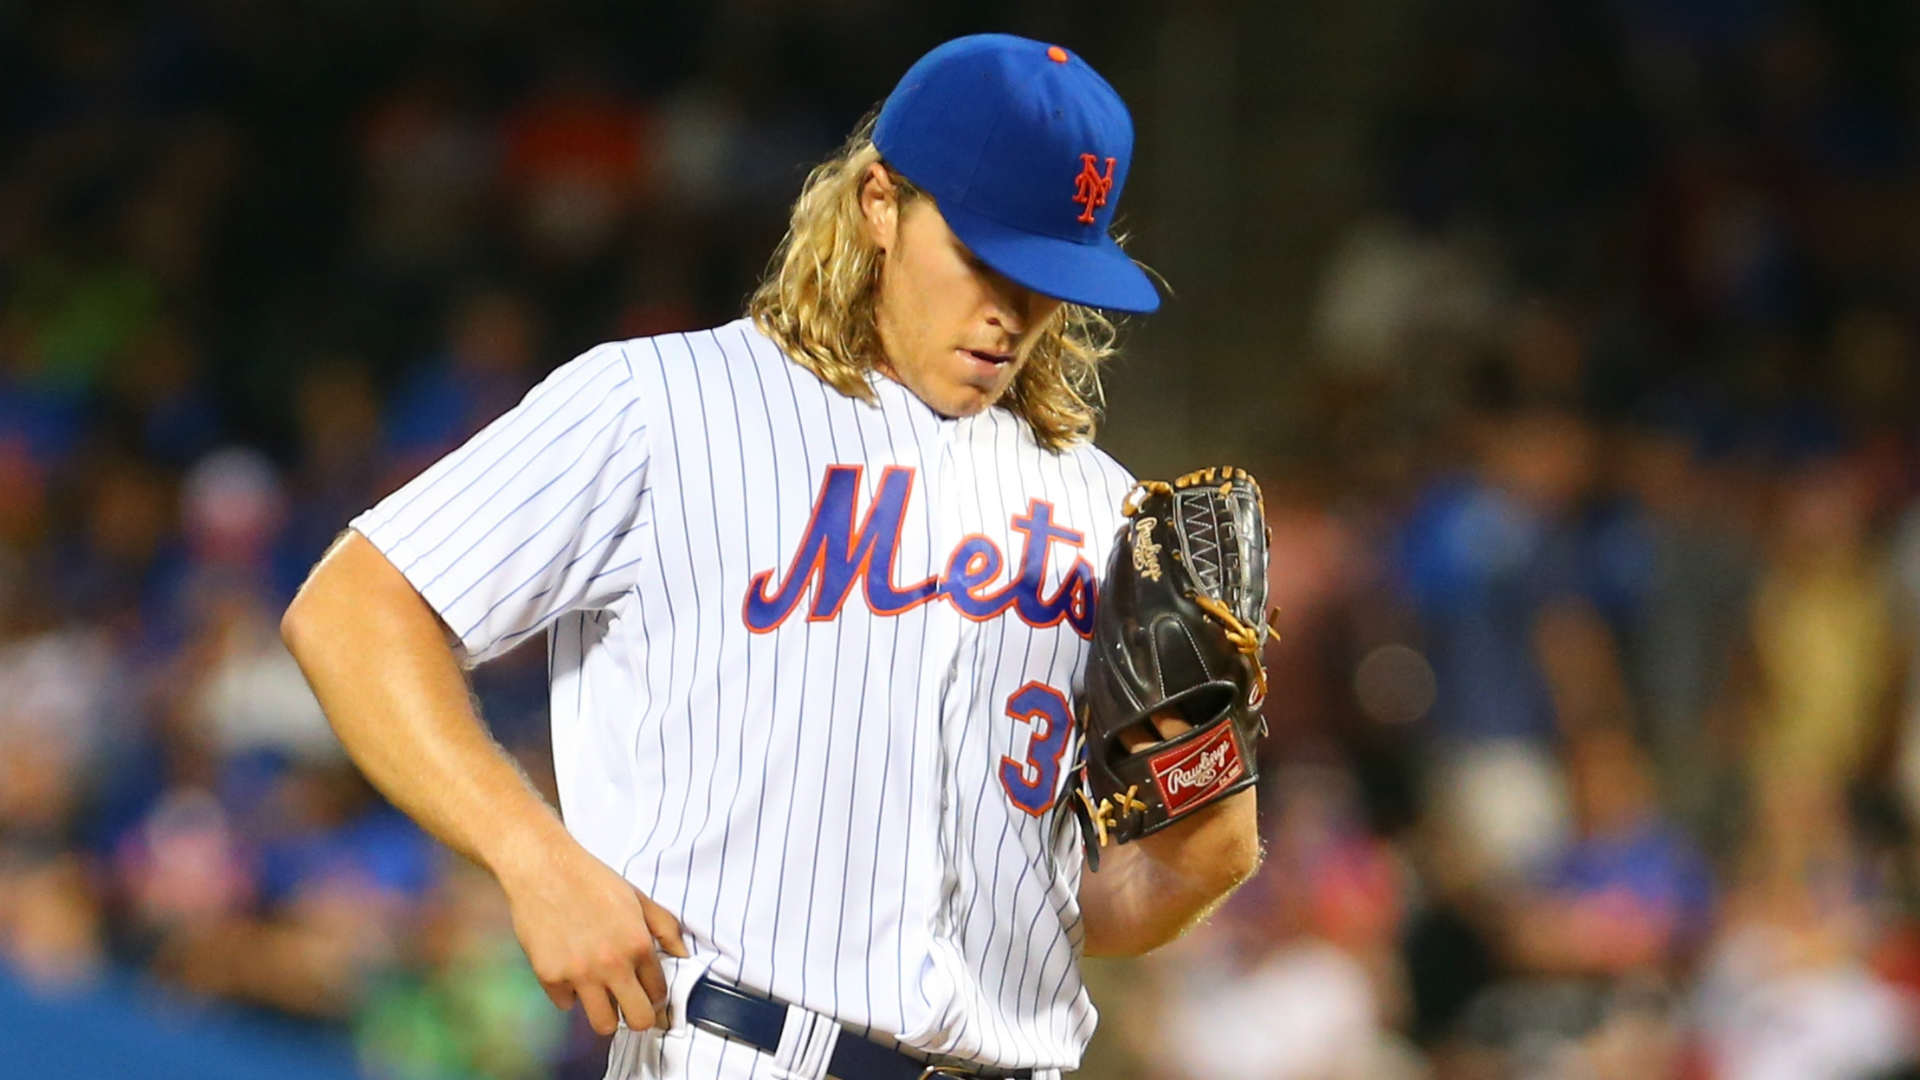 Noah Syndergaard was taken out of the game in the seventh inning and was seen grabbing the back of his right leg.